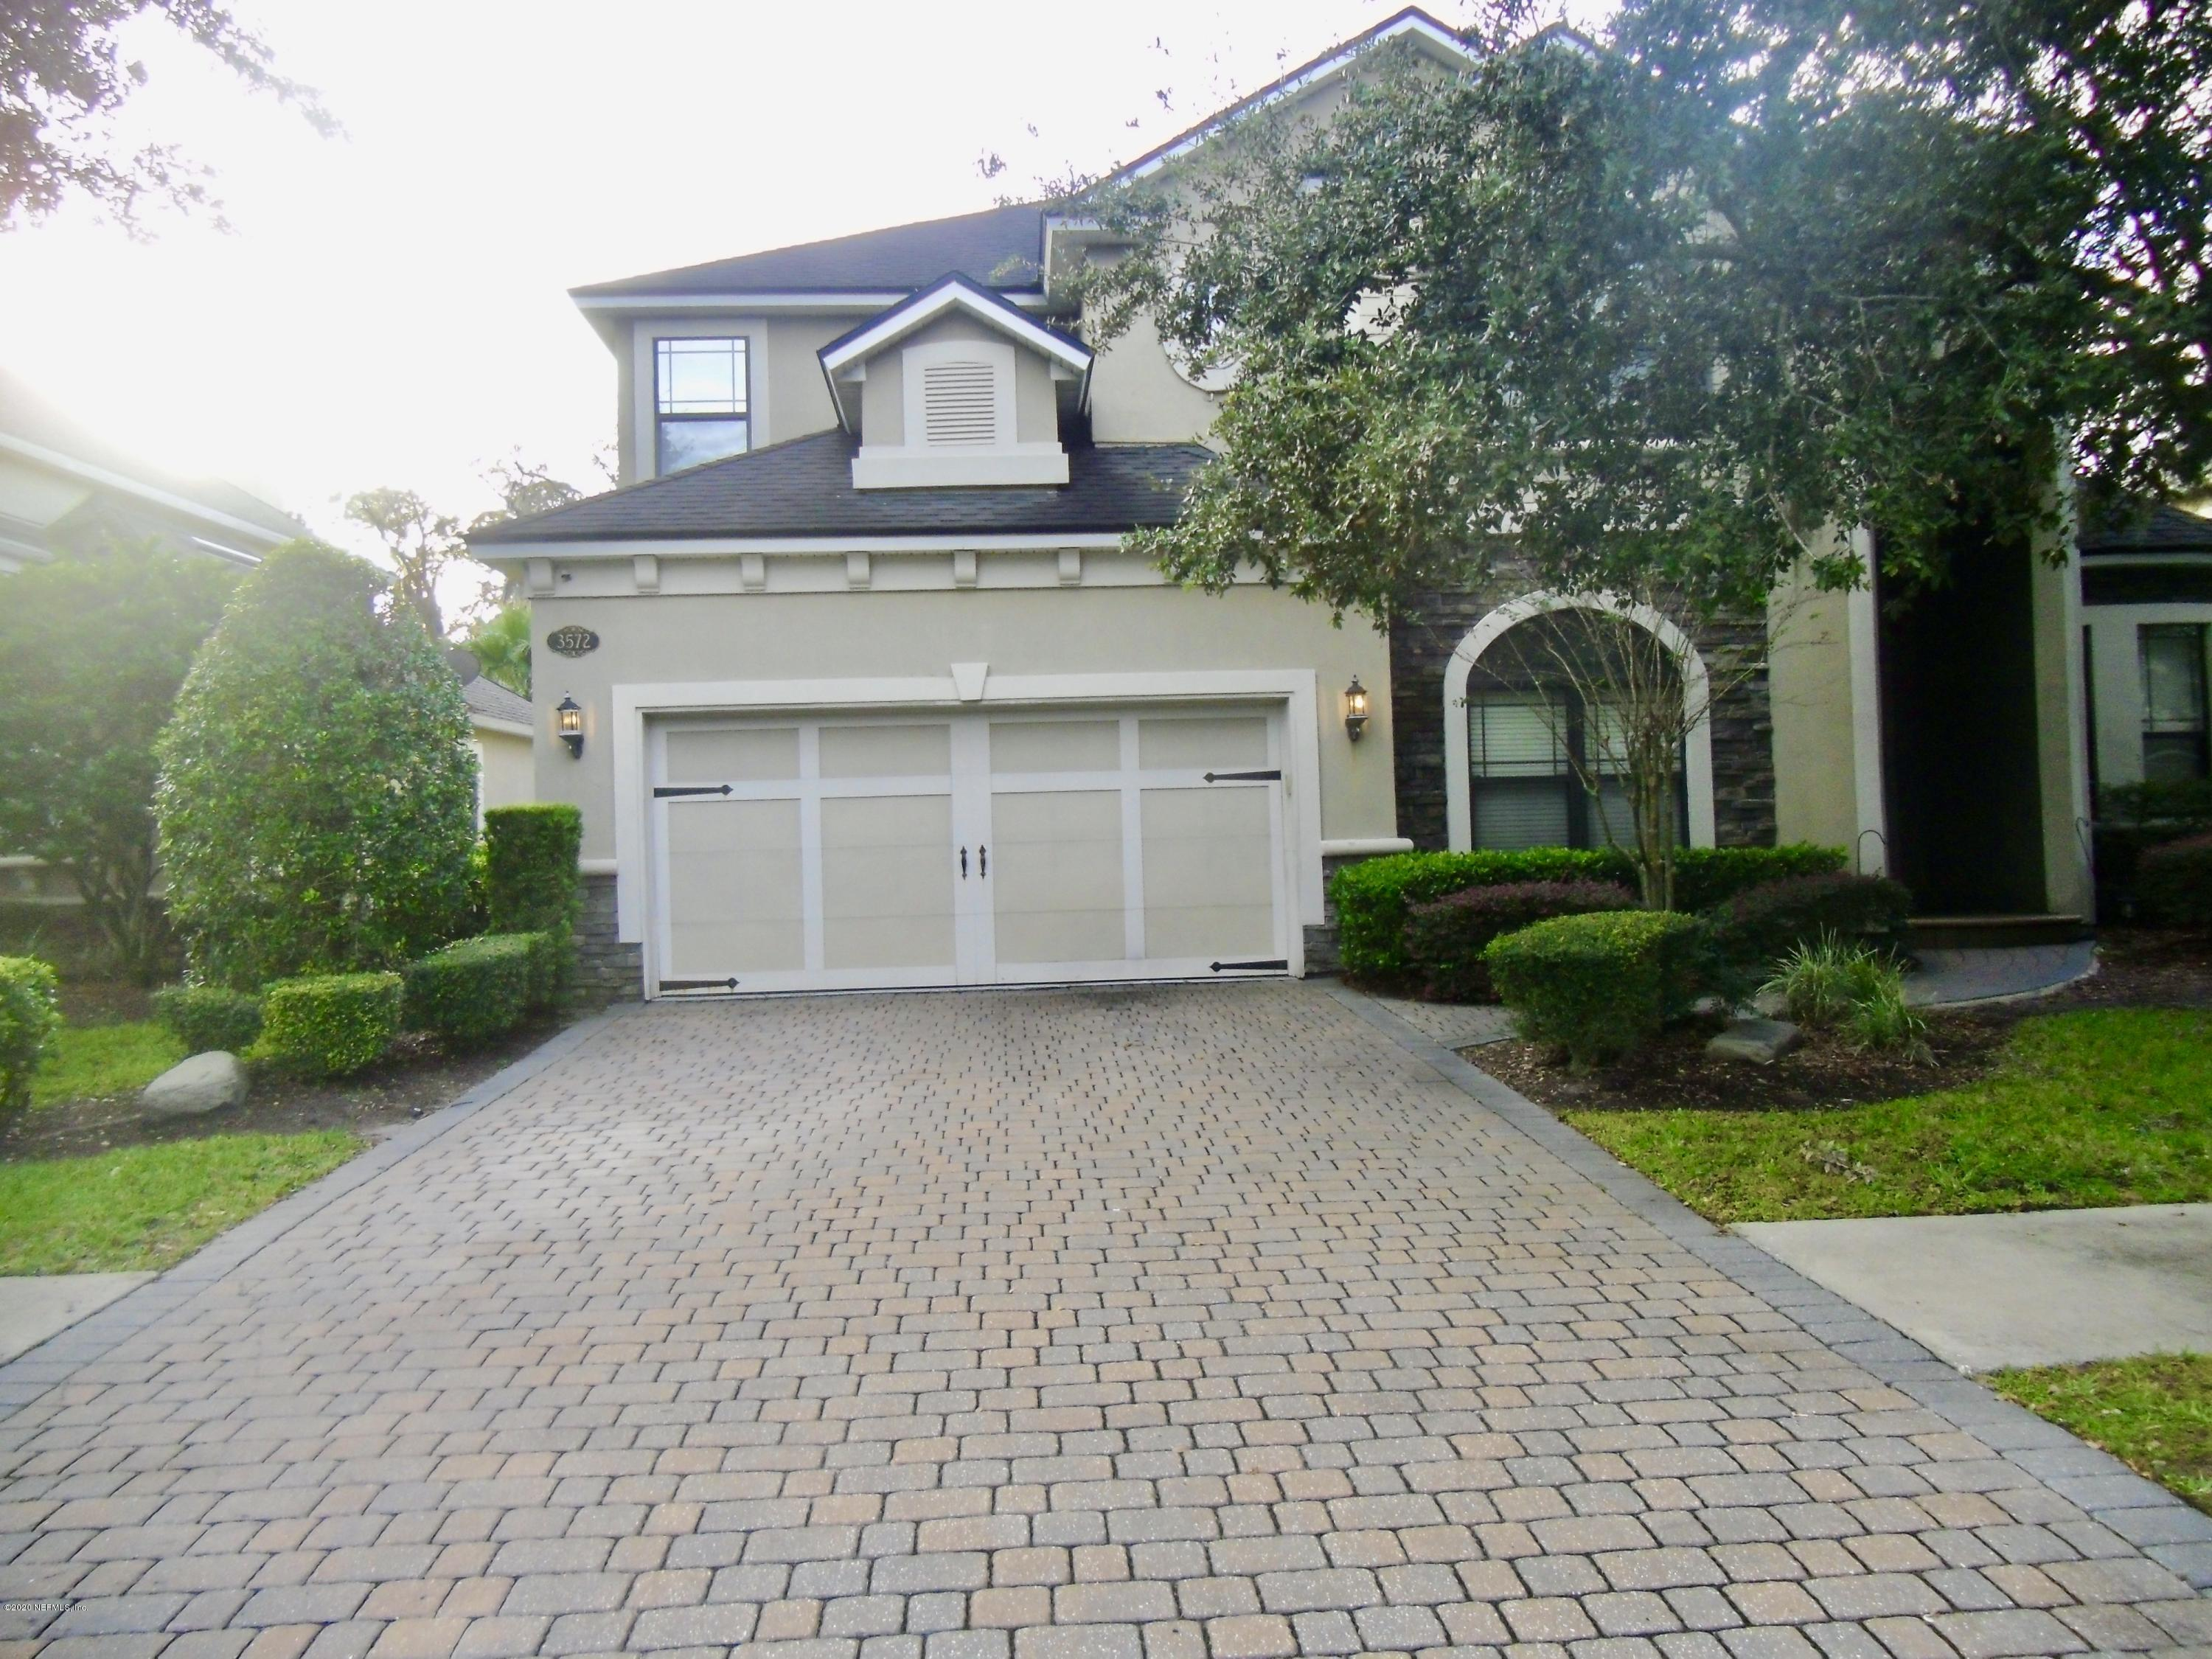 3572 HIGHLAND GLEN, JACKSONVILLE, FLORIDA 32224, 4 Bedrooms Bedrooms, ,3 BathroomsBathrooms,Residential,For sale,HIGHLAND GLEN,1081888